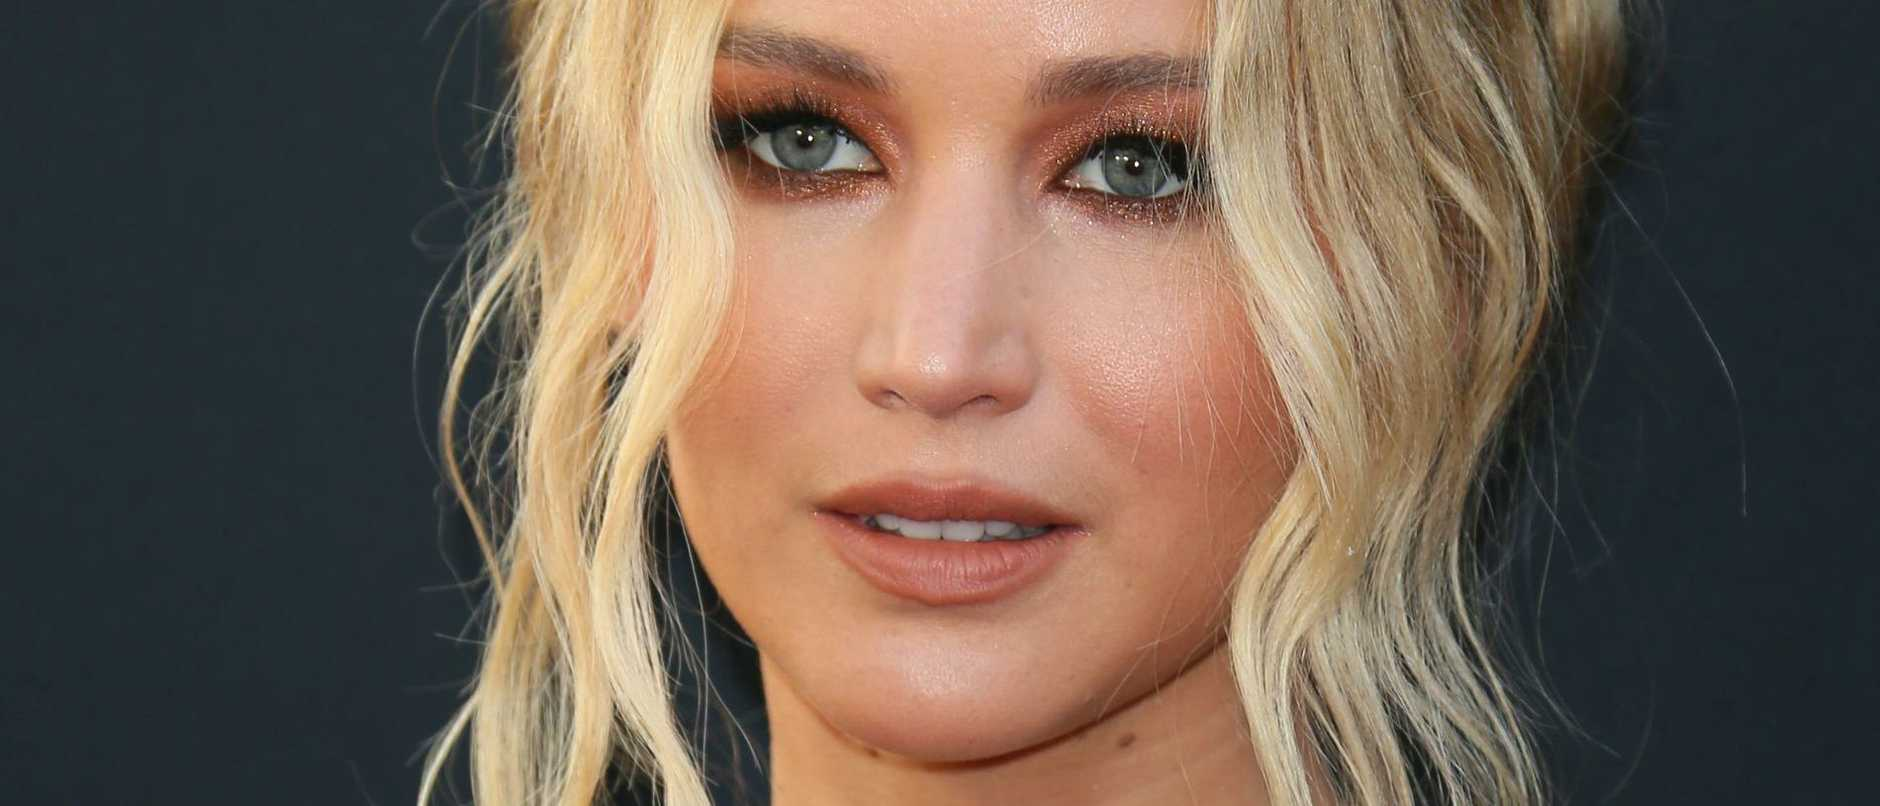 Production on Jennifer Lawrence's new film has been shut down after the actress was injured in a stunt gone wrong involving an explosion.